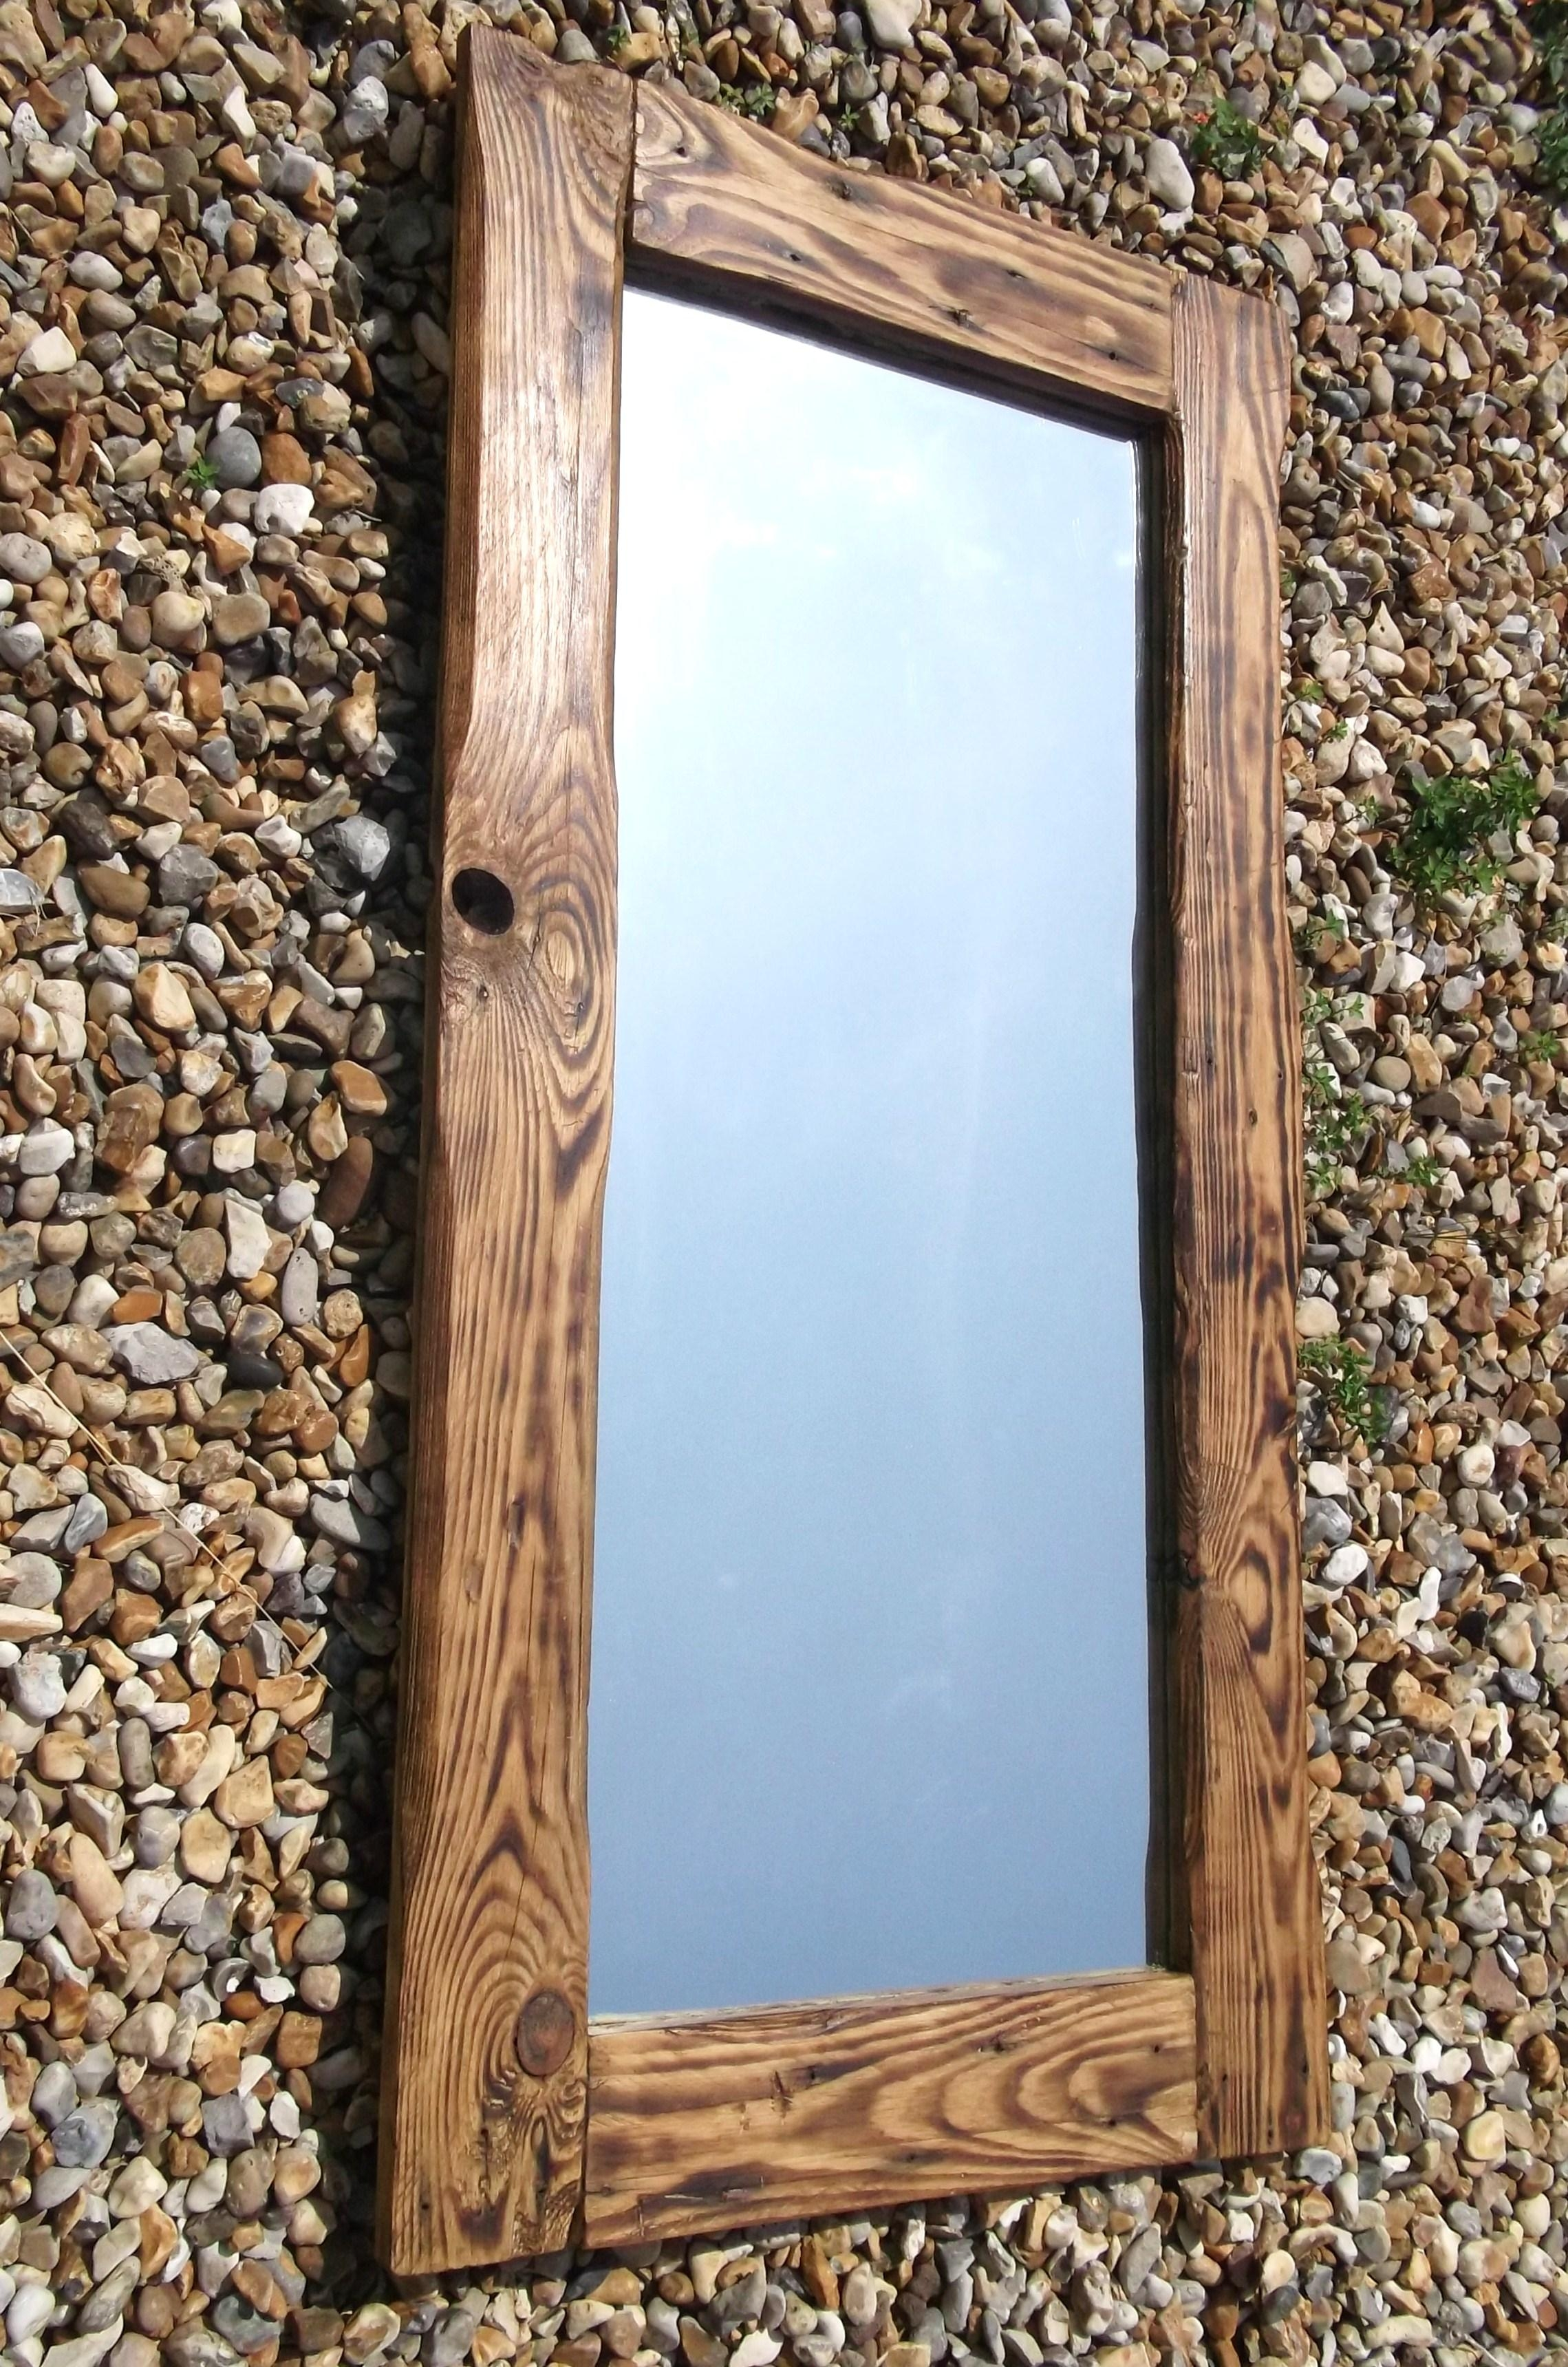 Reclaimed Wood Mirrors | Dave's Beach Hut Regarding Timber Mirrors (View 2 of 20)